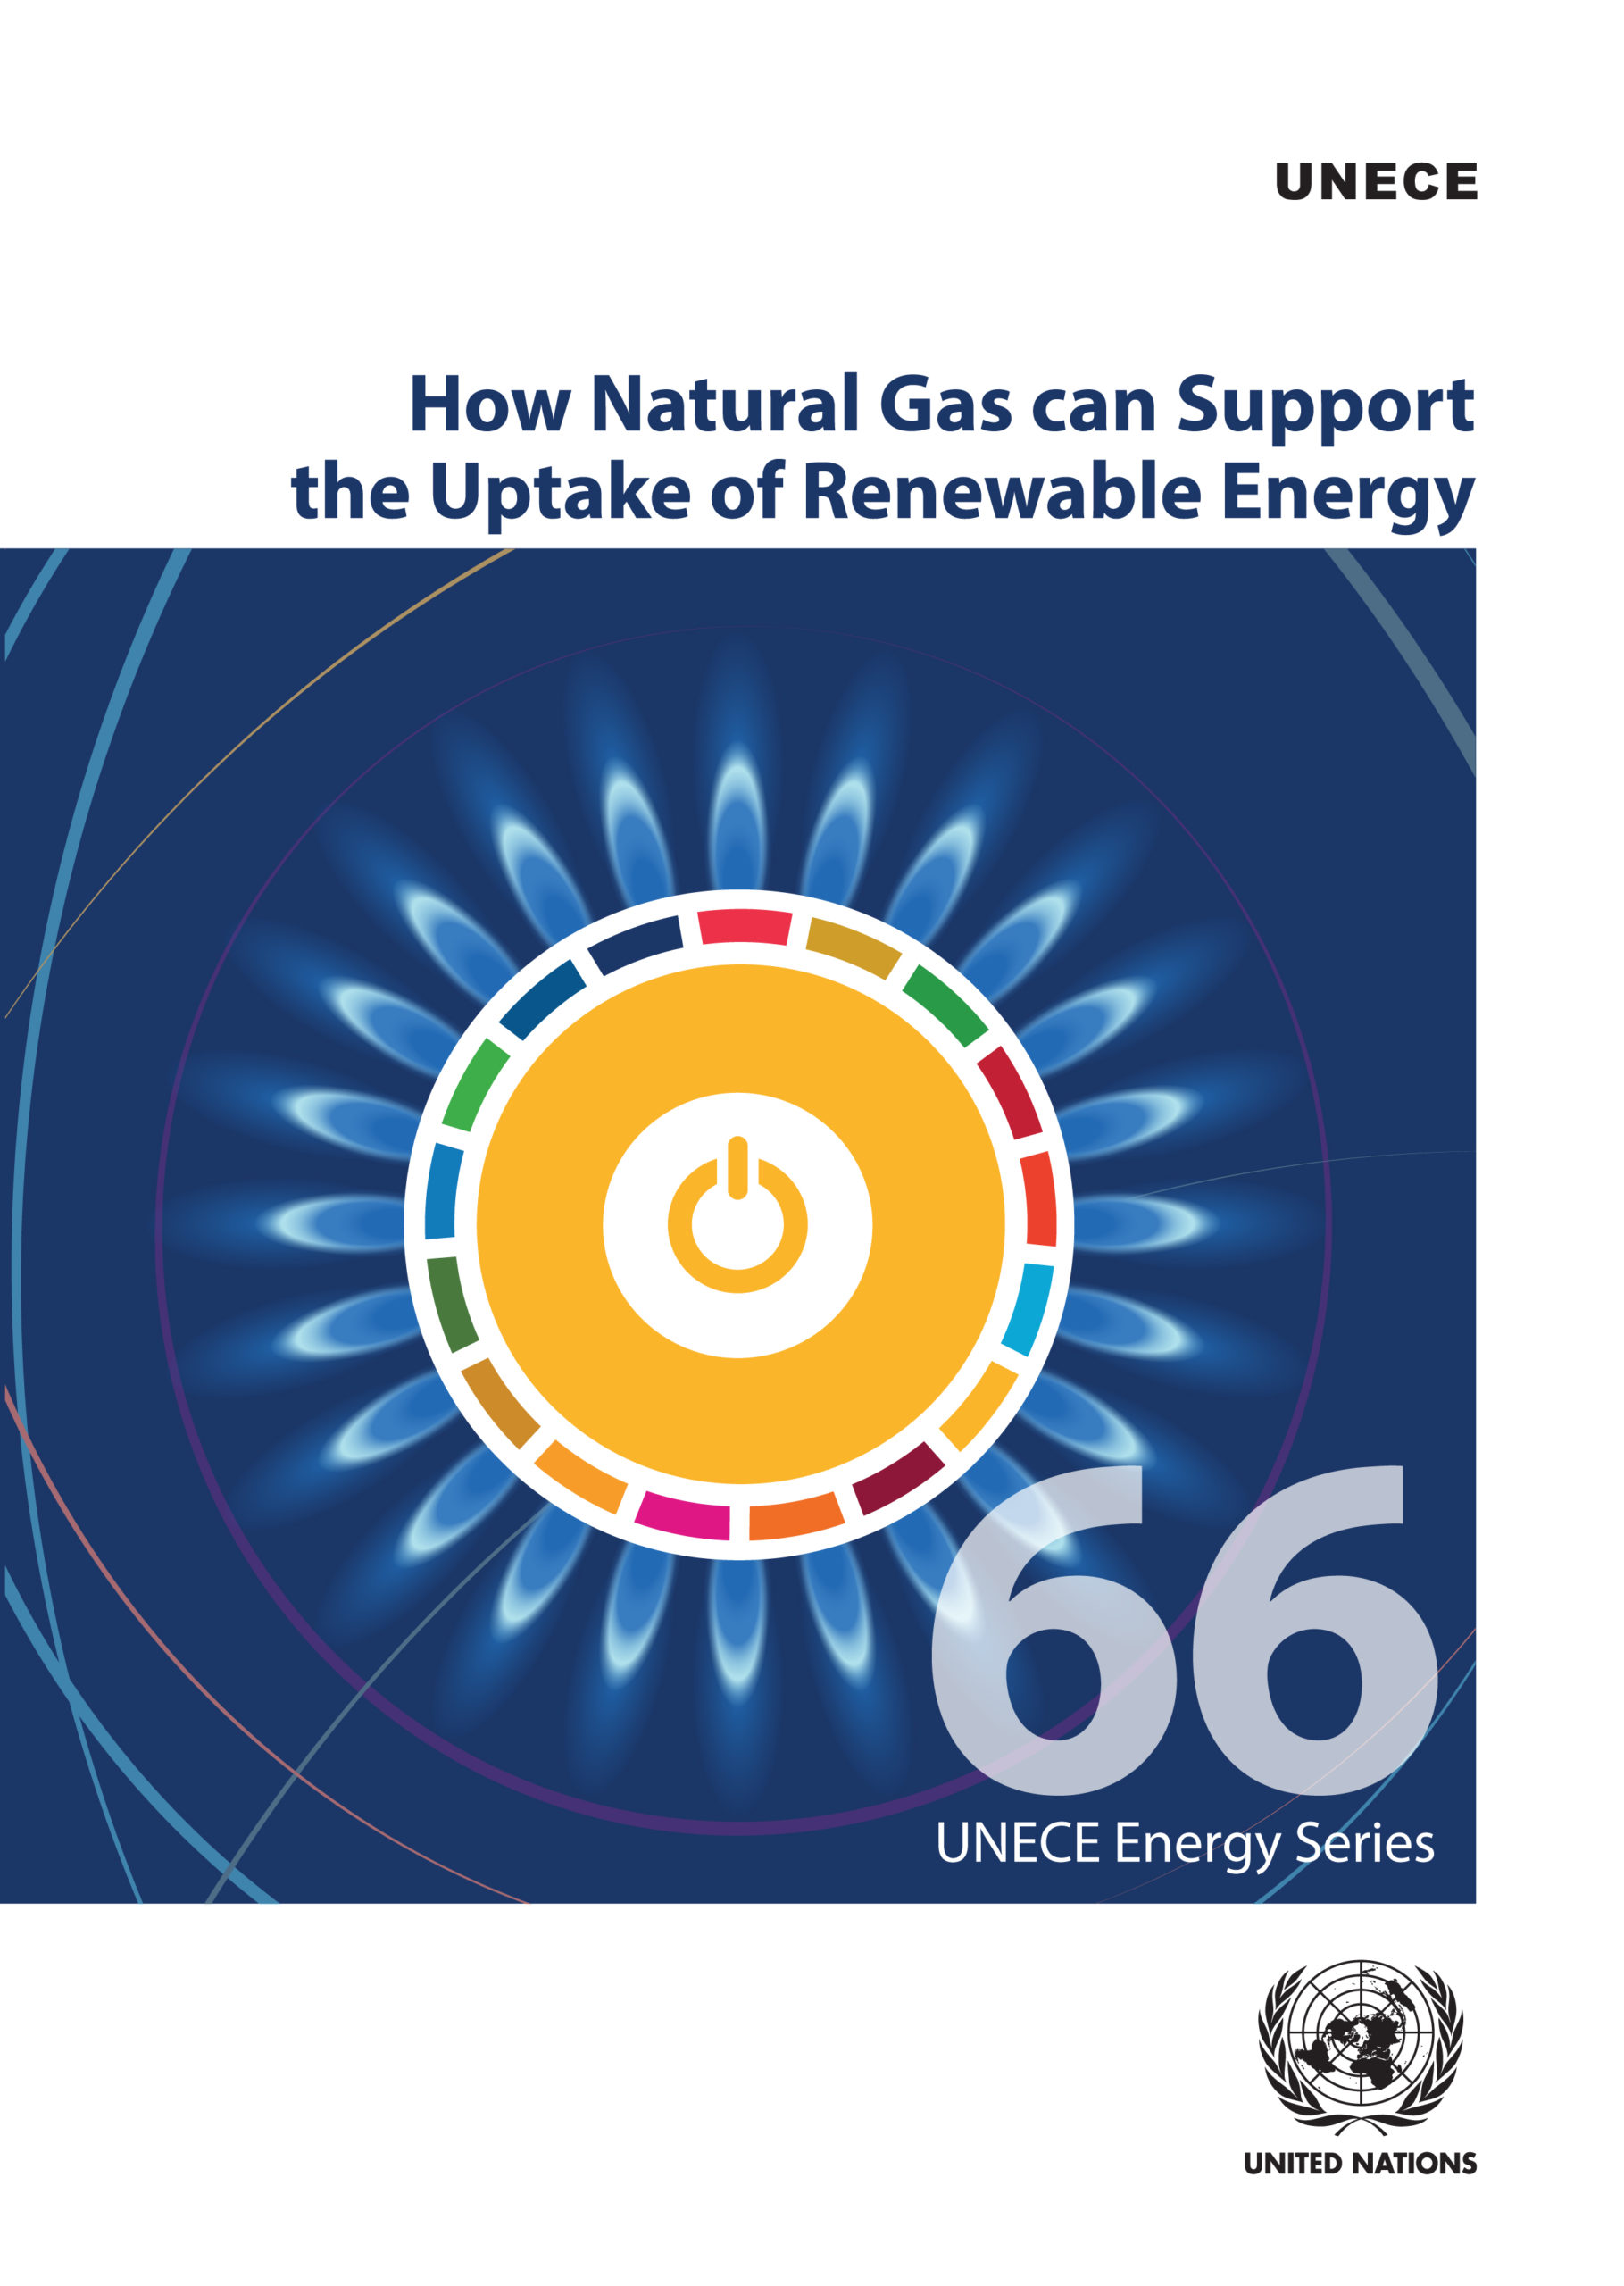 How Natural Gas can Support the Uptake of Renewable Energy